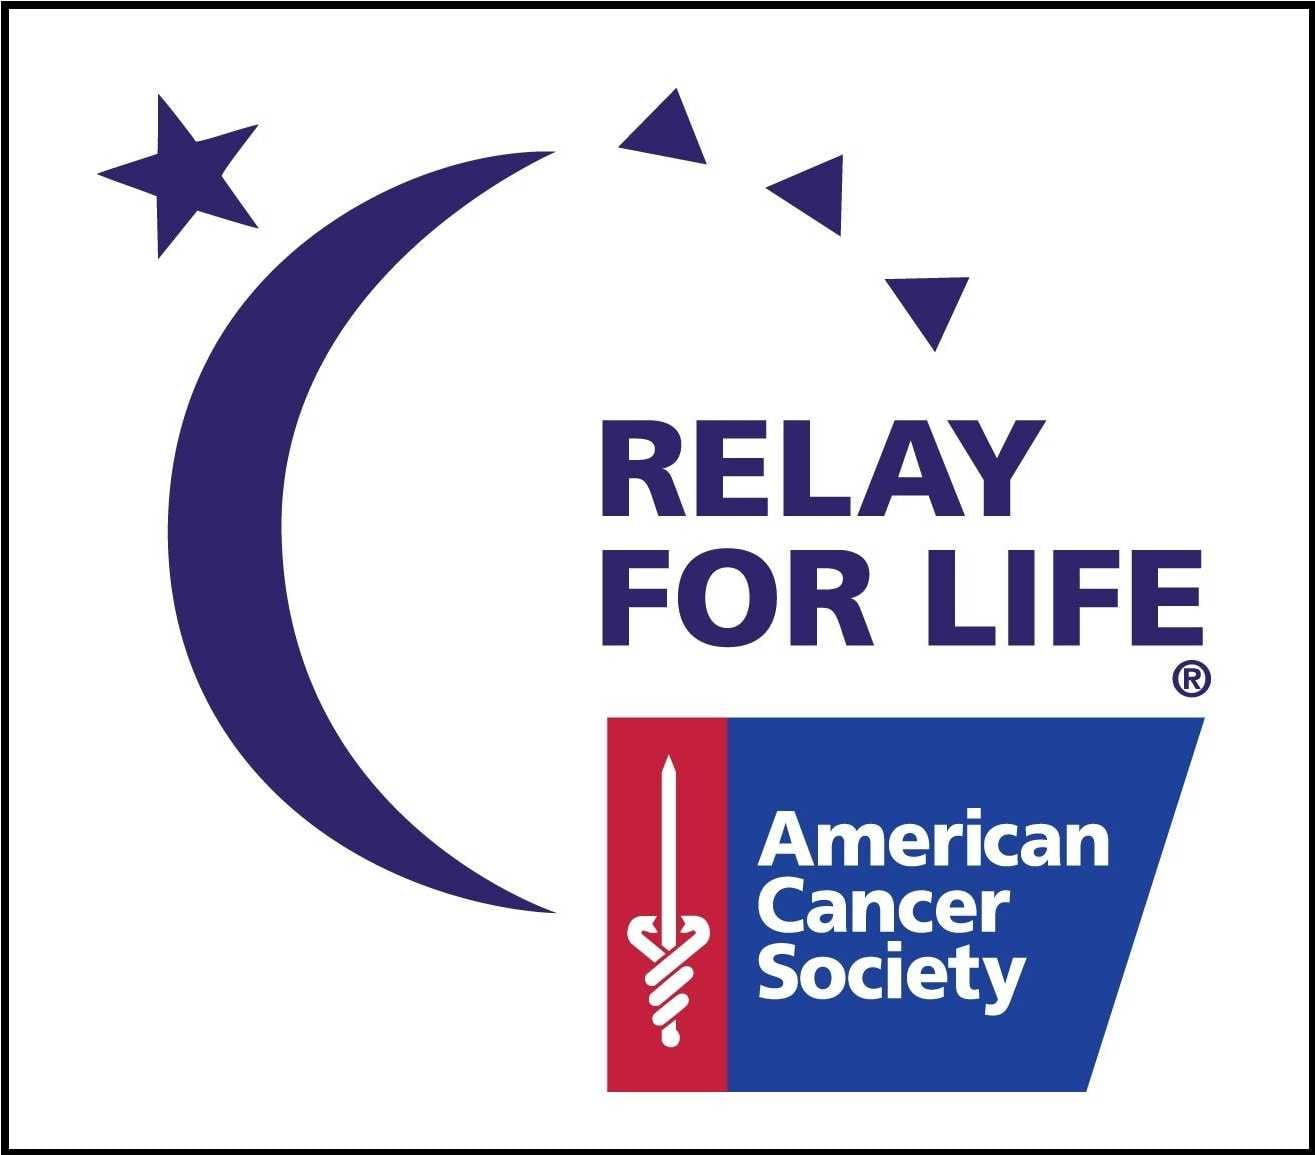 smu celebrates relay for life on april 10